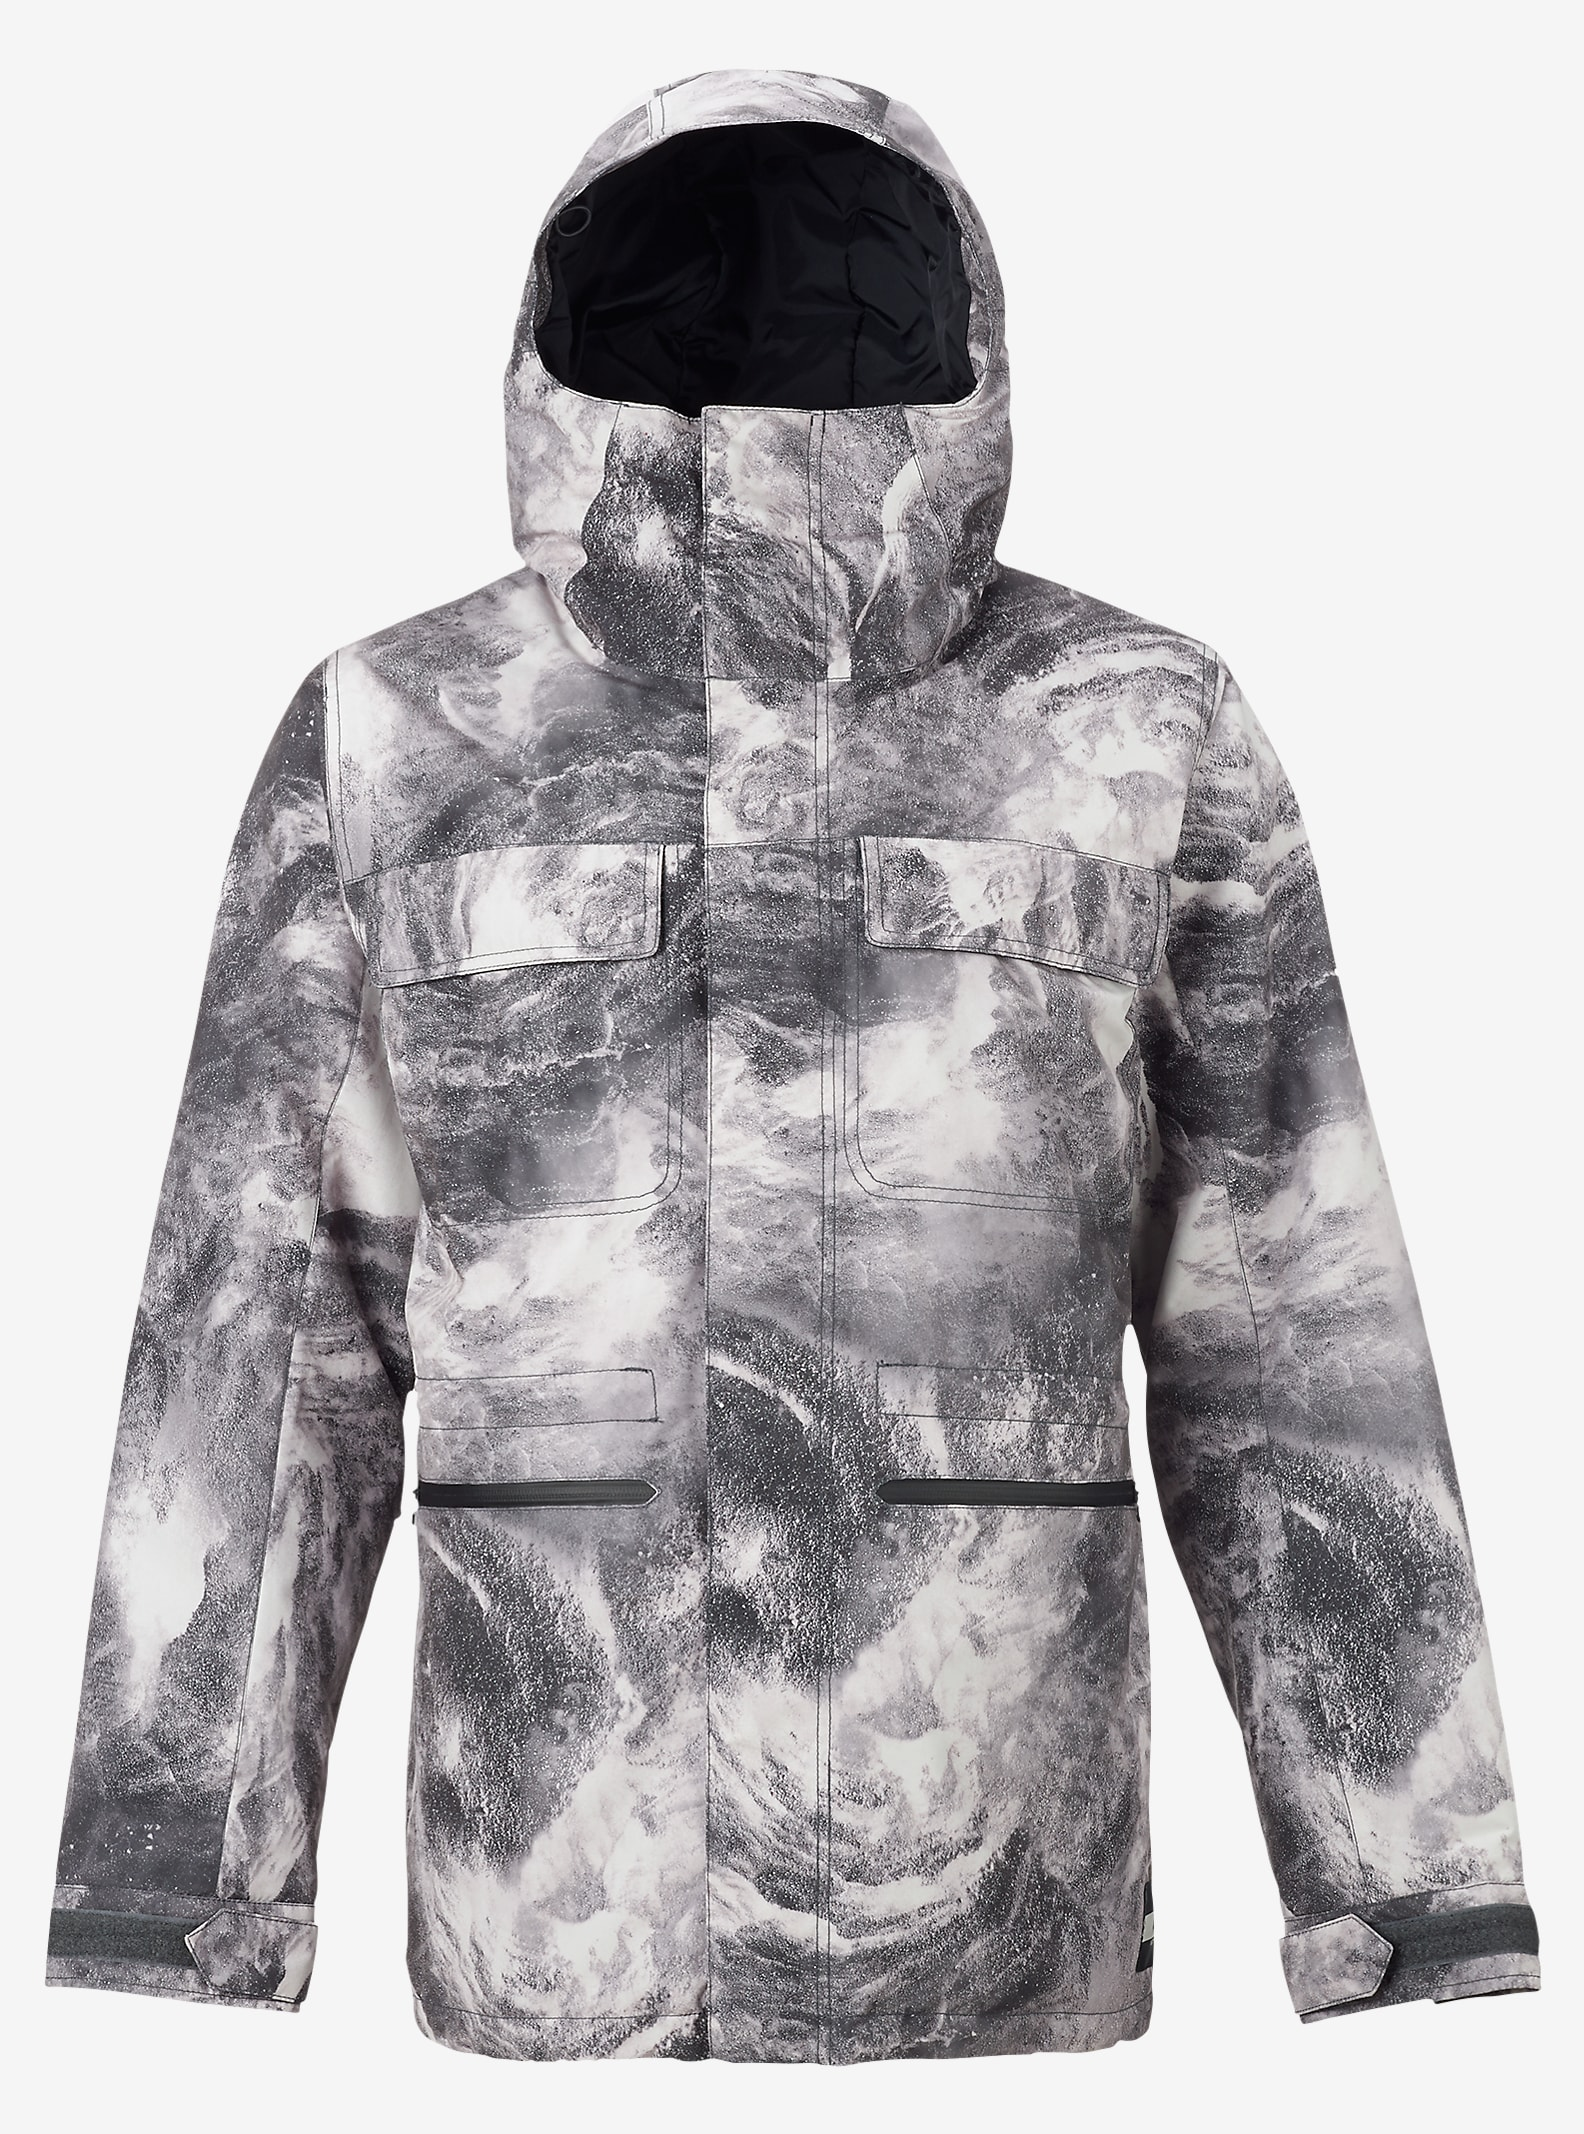 Burton Encore Jacket shown in Air